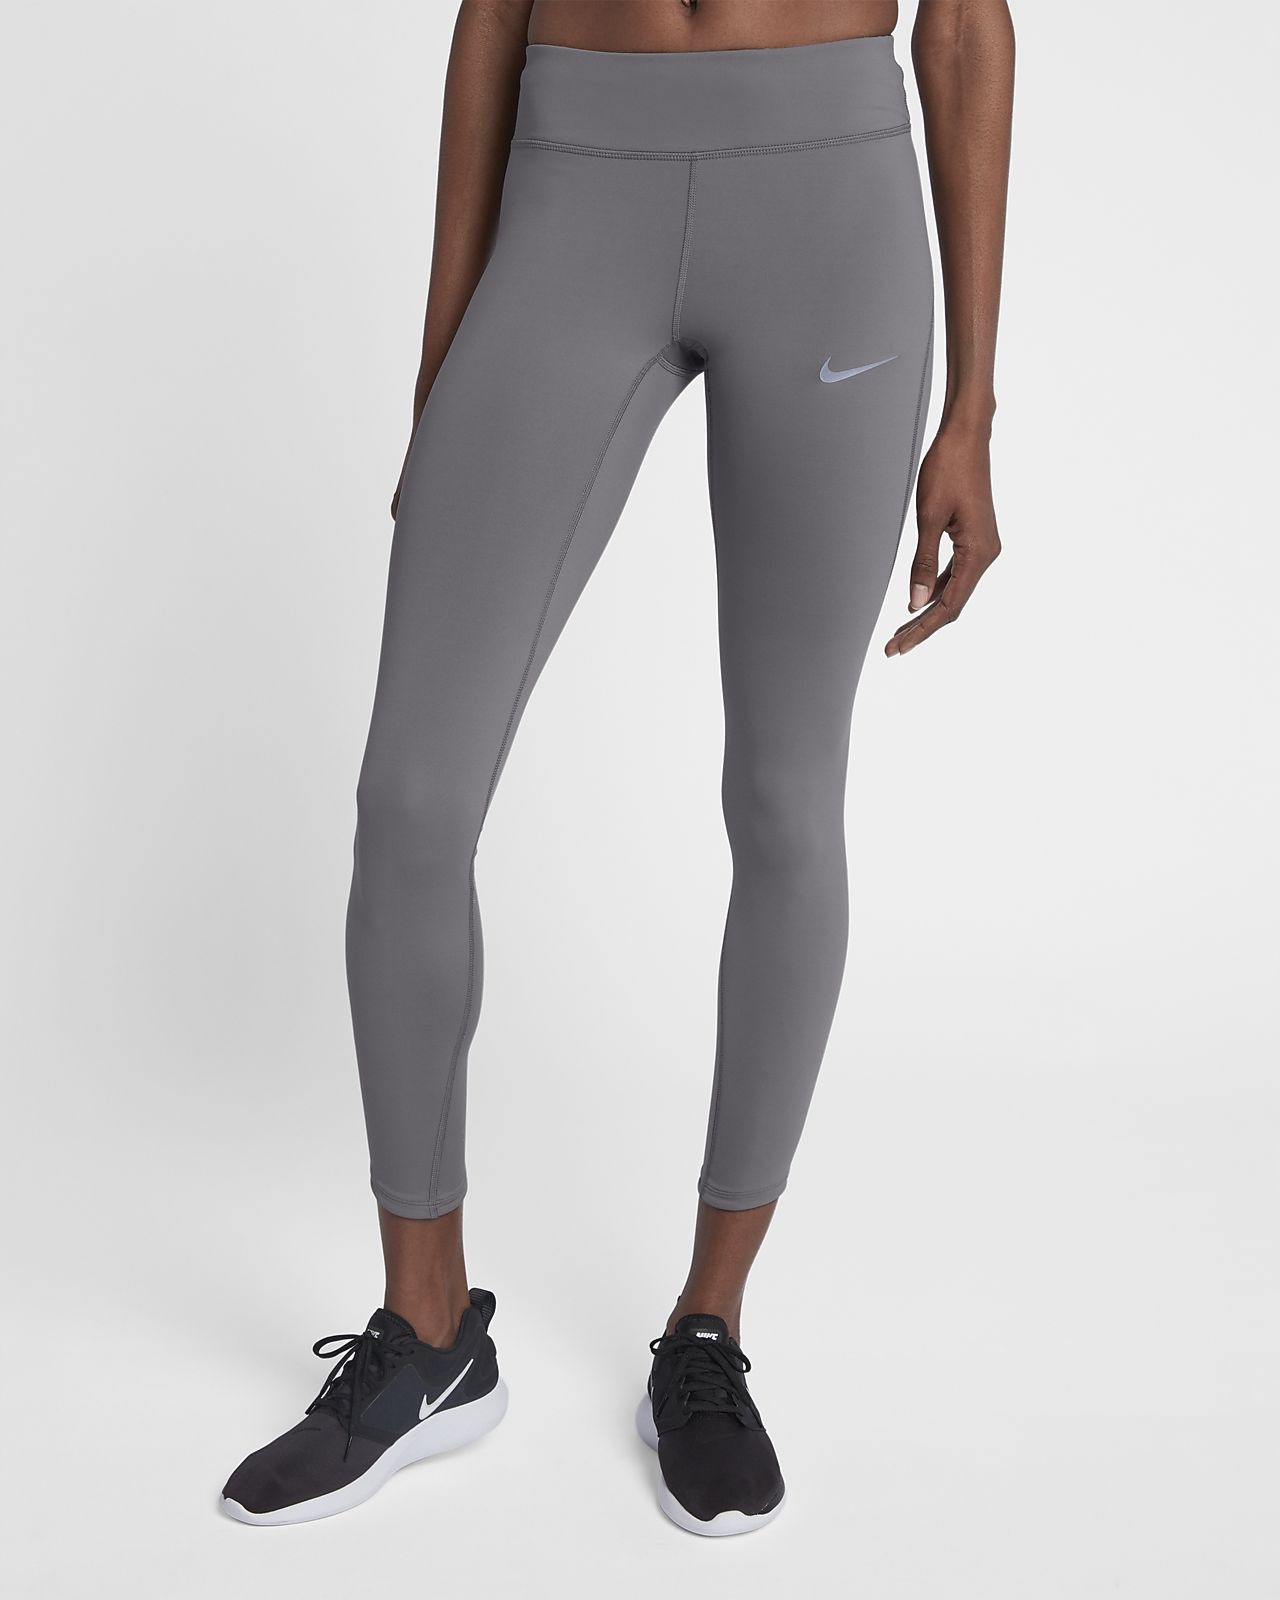 Nike Epic Lux Women's Mid-Rise Running Tights